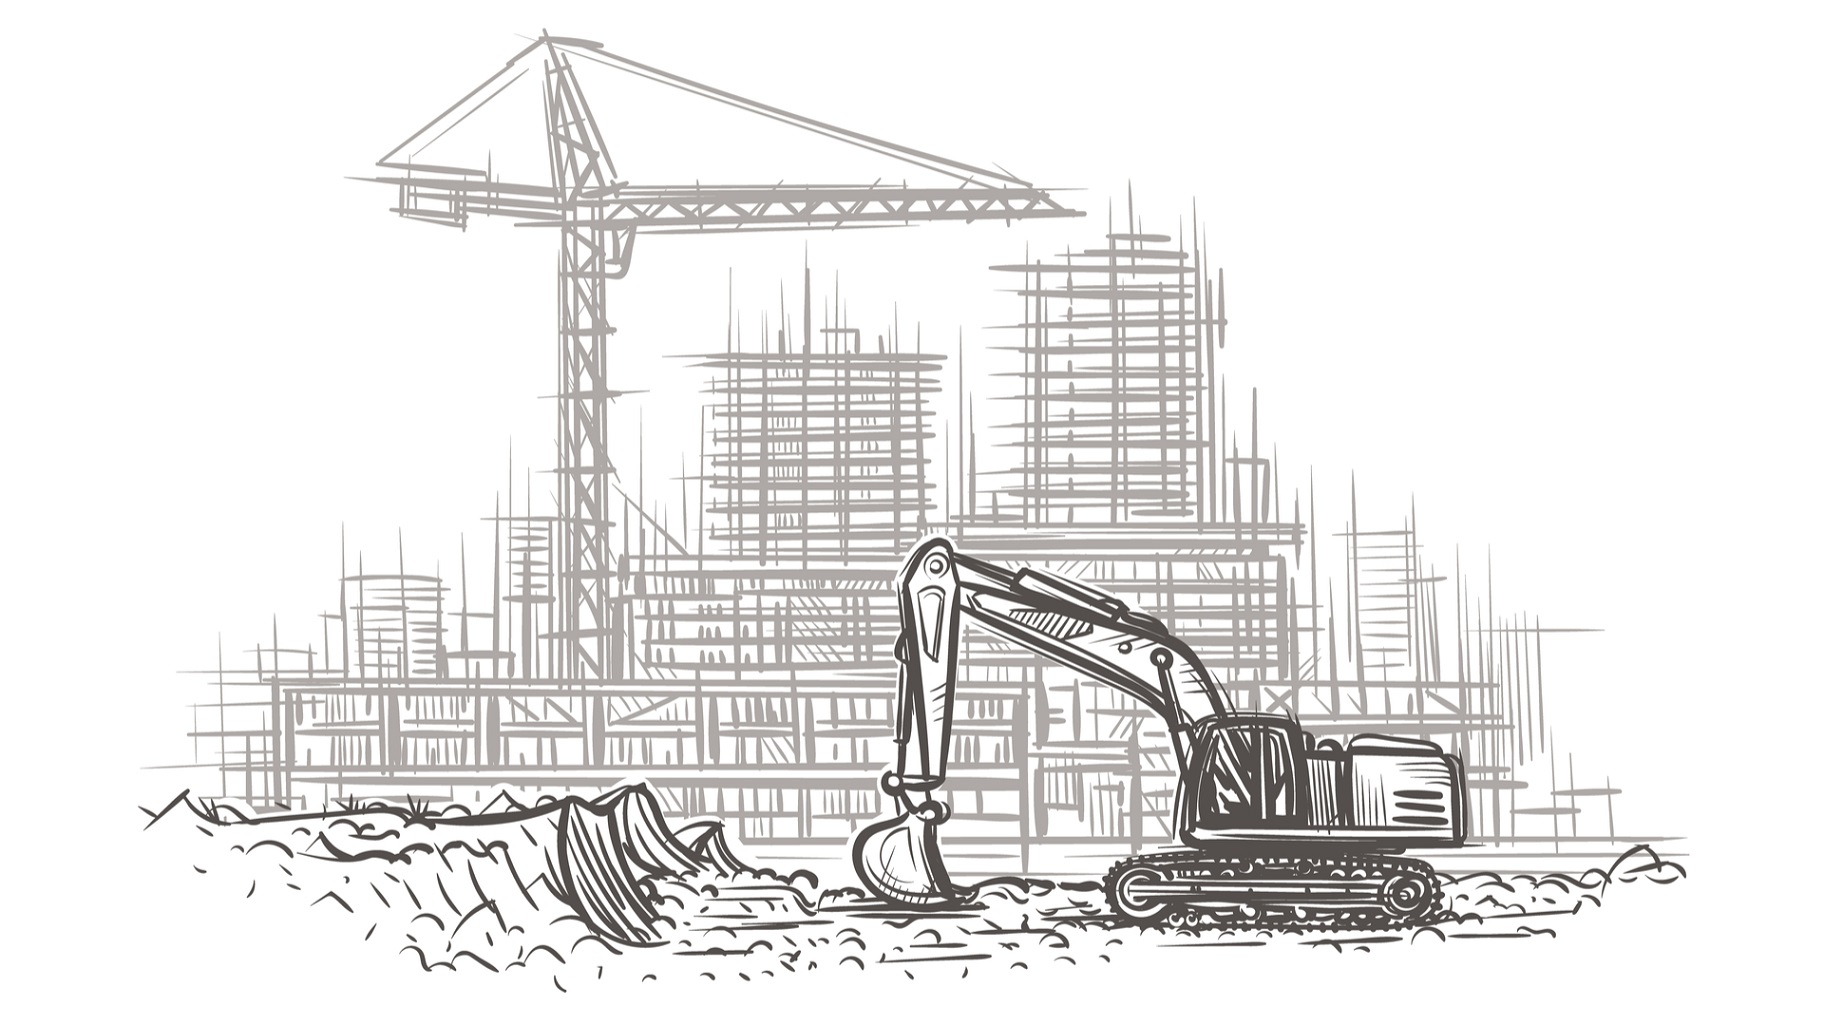 Need a Houston Construction Team for your next project? HM General Contractors can help.